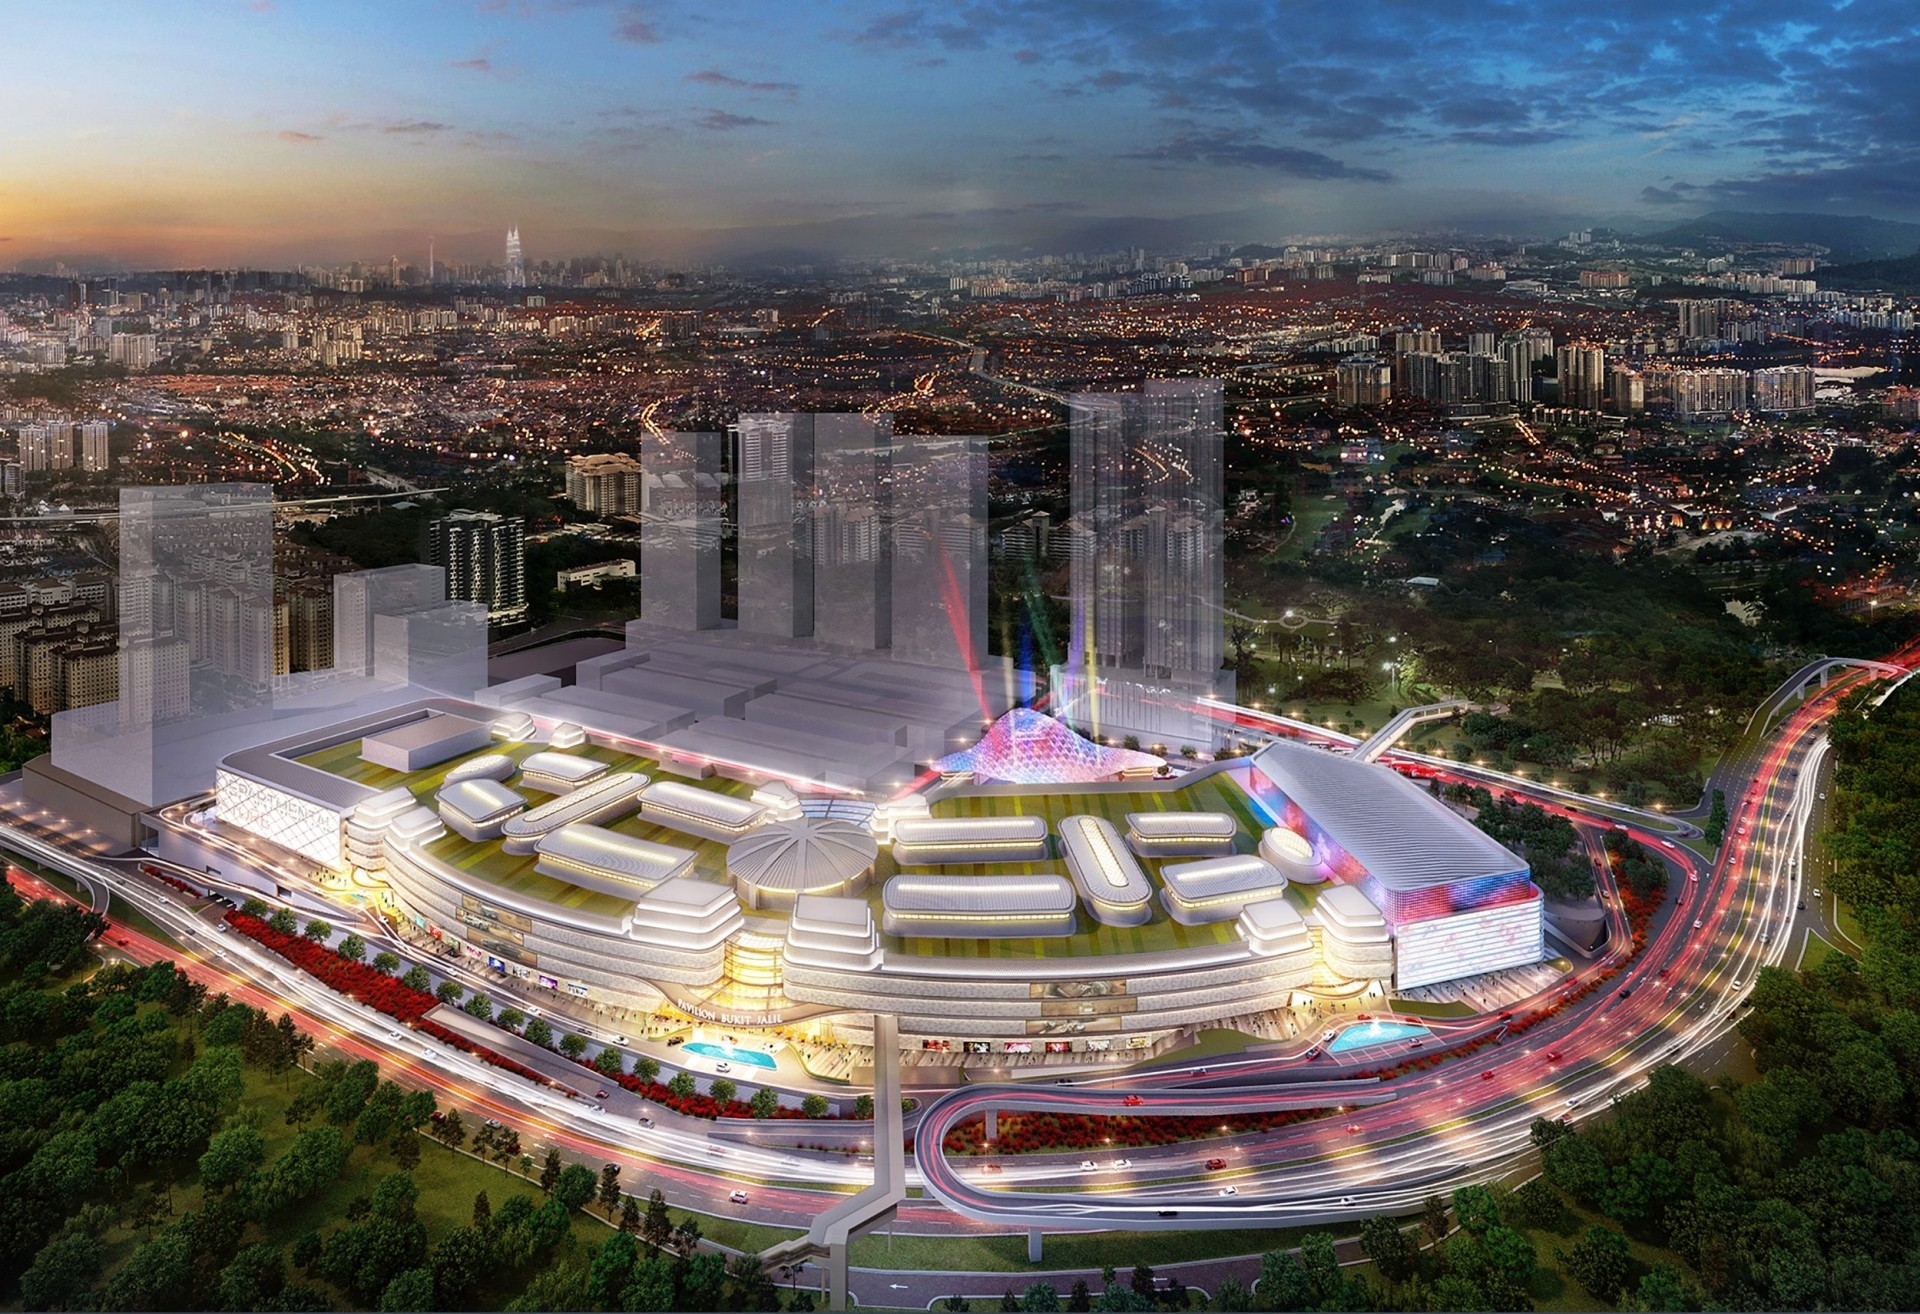 Pavilion Bukit Jalil mall is part of the 20ha Bukit Jalil City integrated lifestyle project in the southern corridor of Klang Valley developed by Malton.